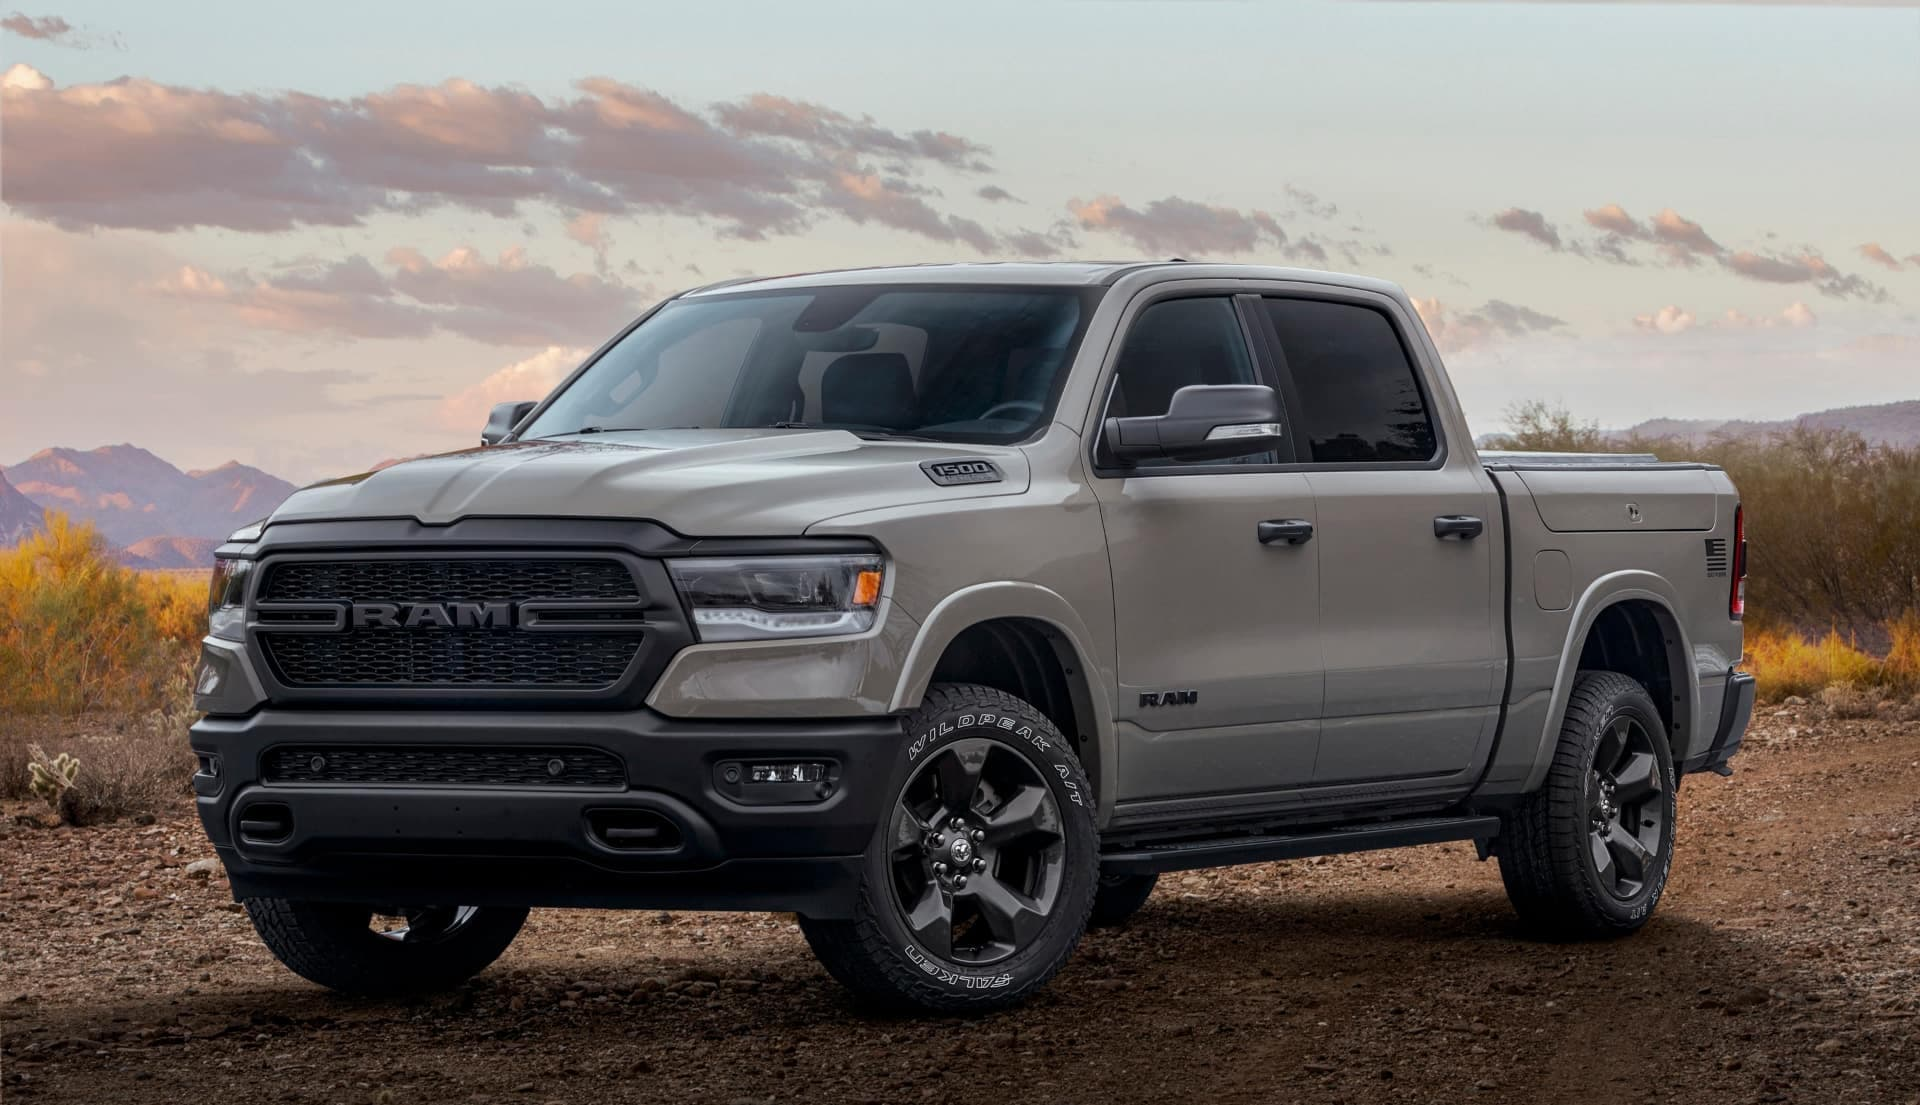 Front 3/4 view of the 2021 Ram 1500